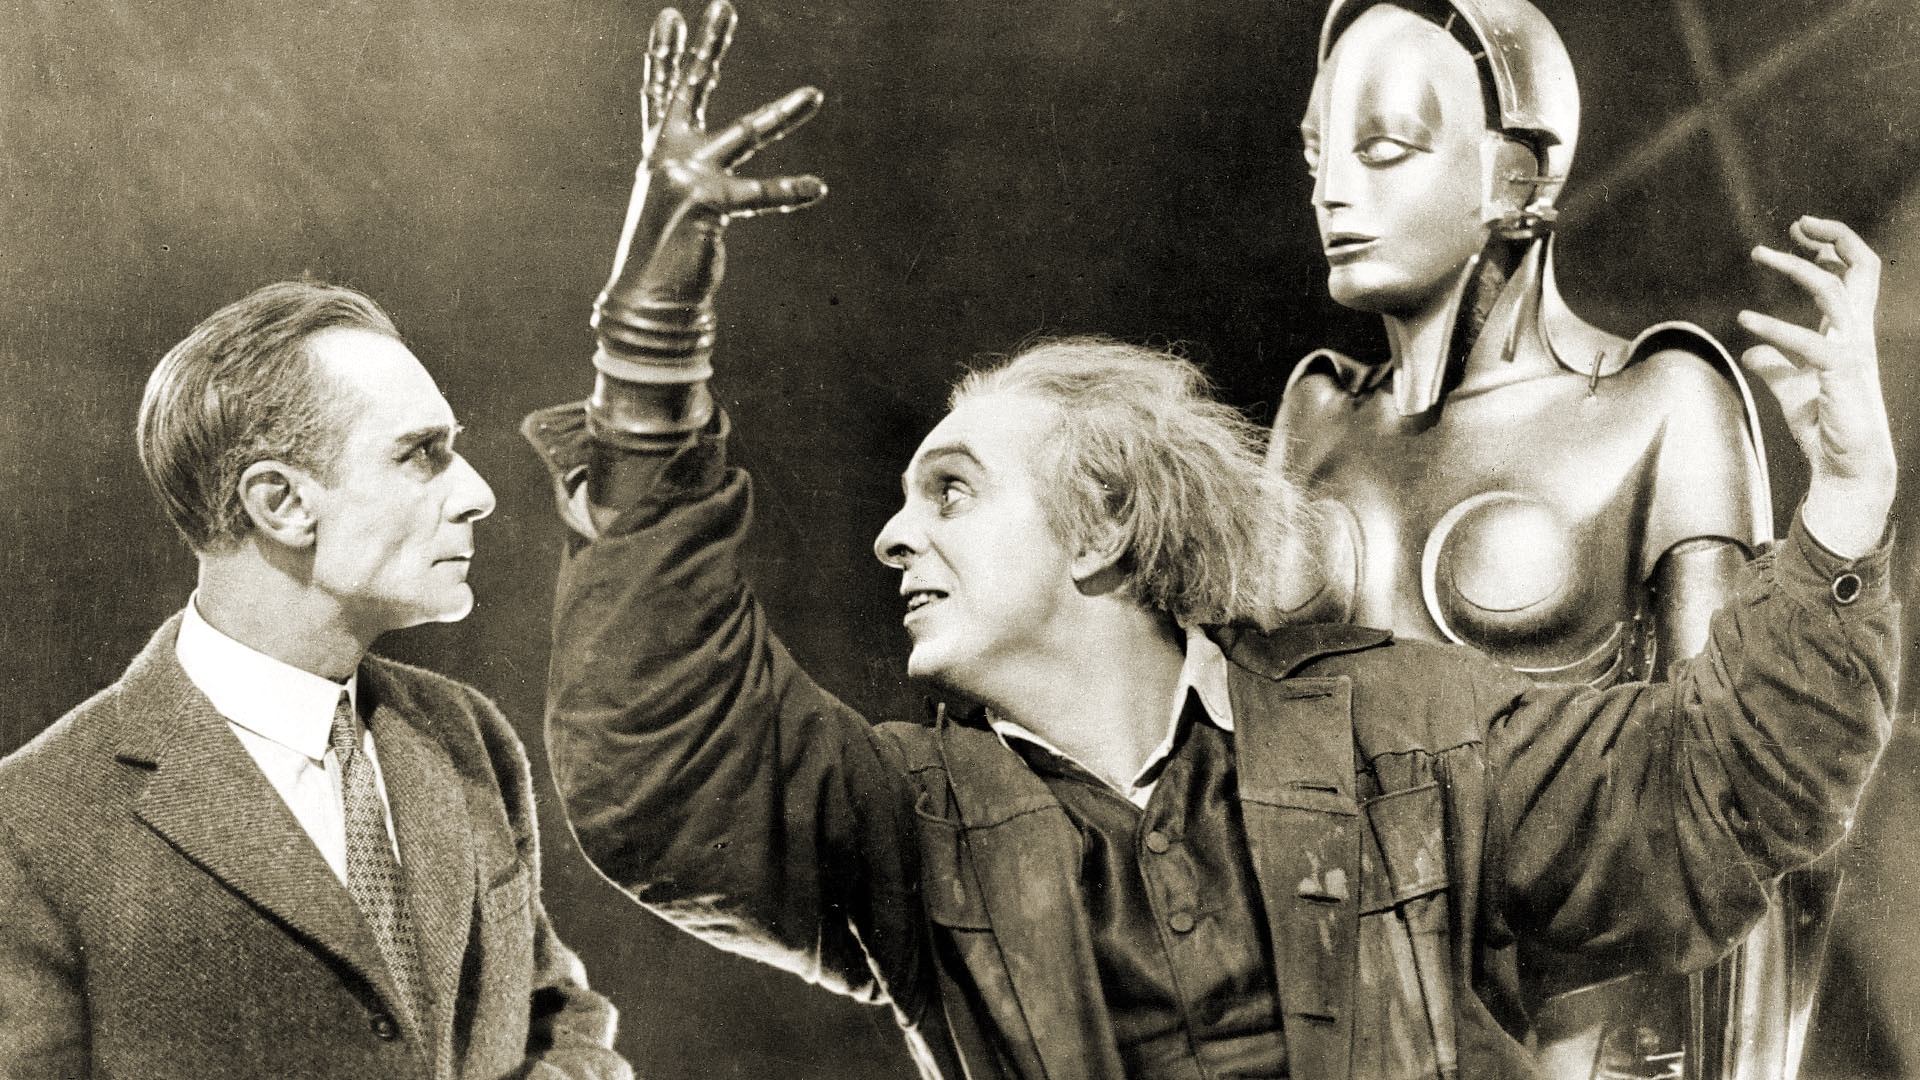 Metropolis directed by Fritz Lang 1927 (Germany)